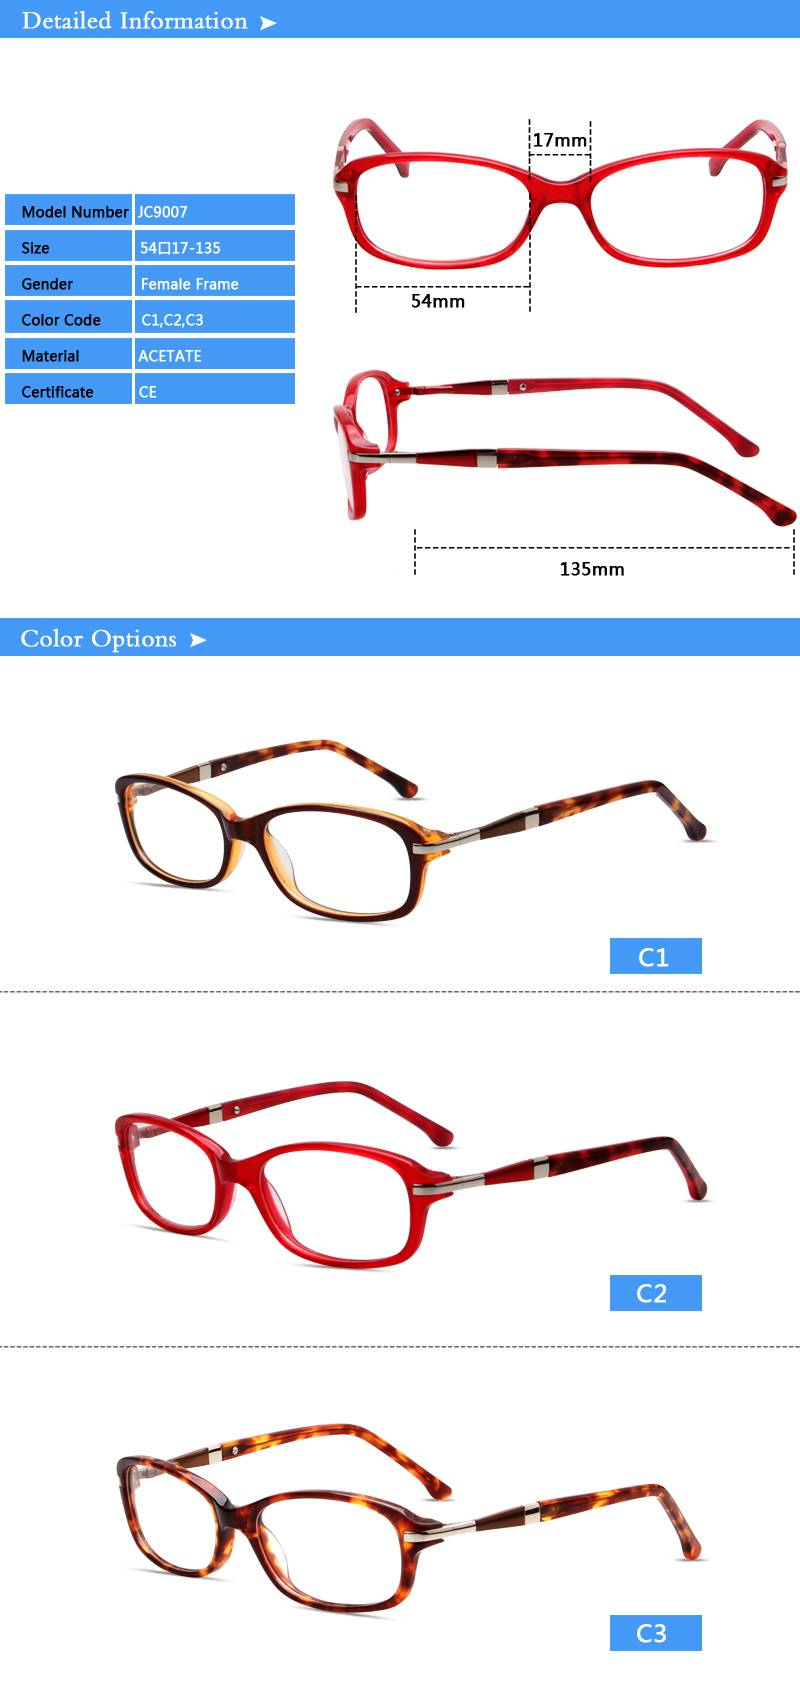 Fashion design acetate eyewear optical frame JC9007 ready in stock